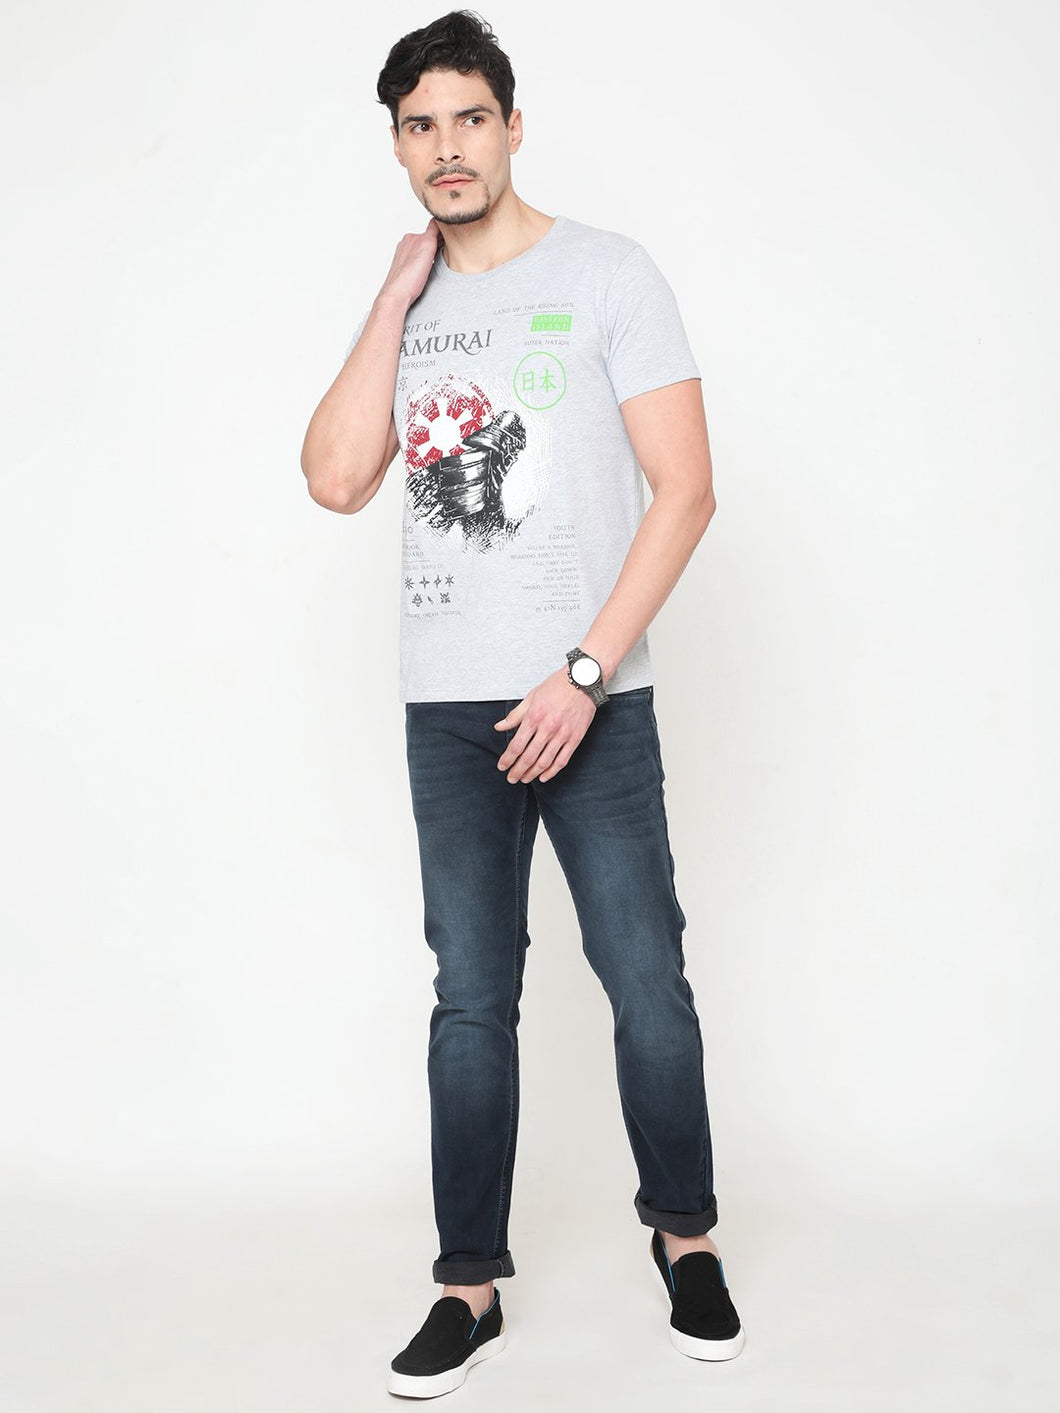 Men's Cotton Crew Neck T-shirt-TC6276Grey